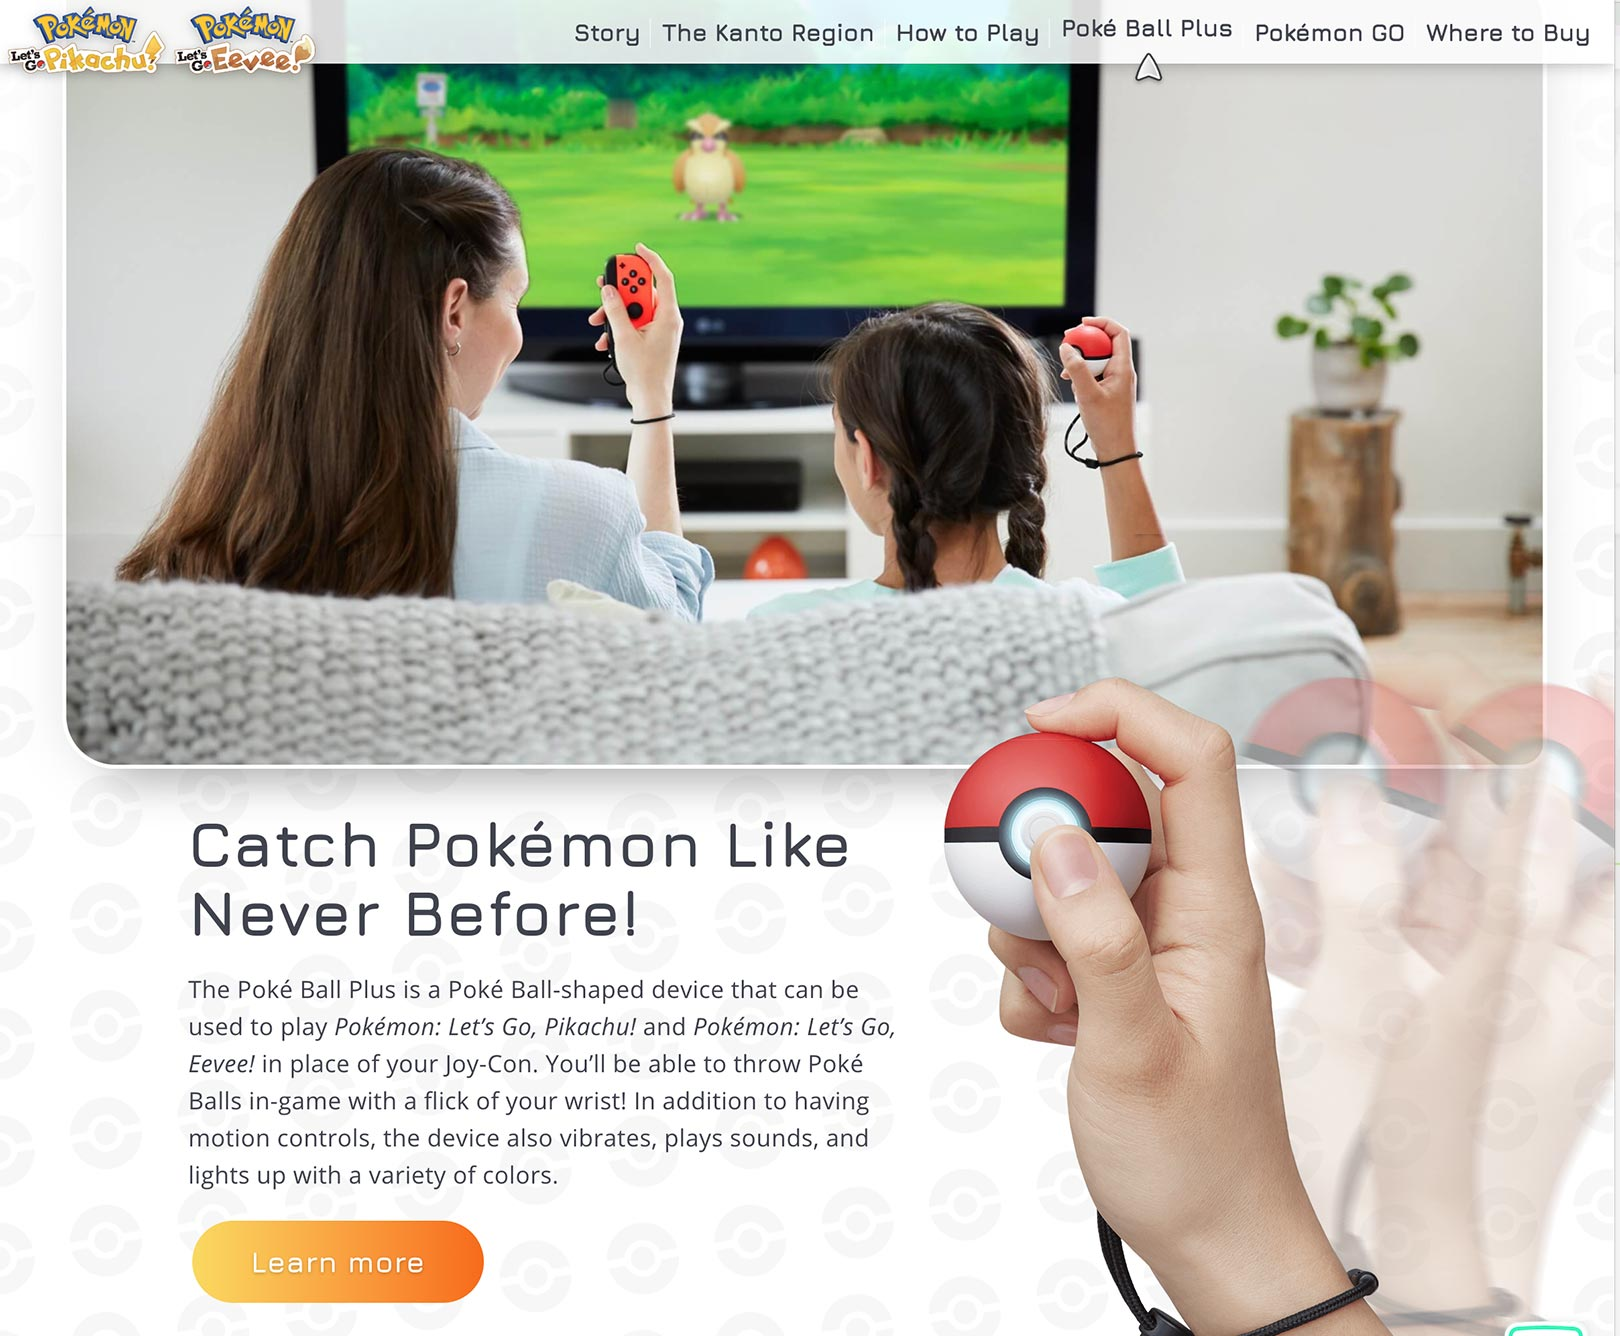 nintendo-pokemon-tearsheet-web2